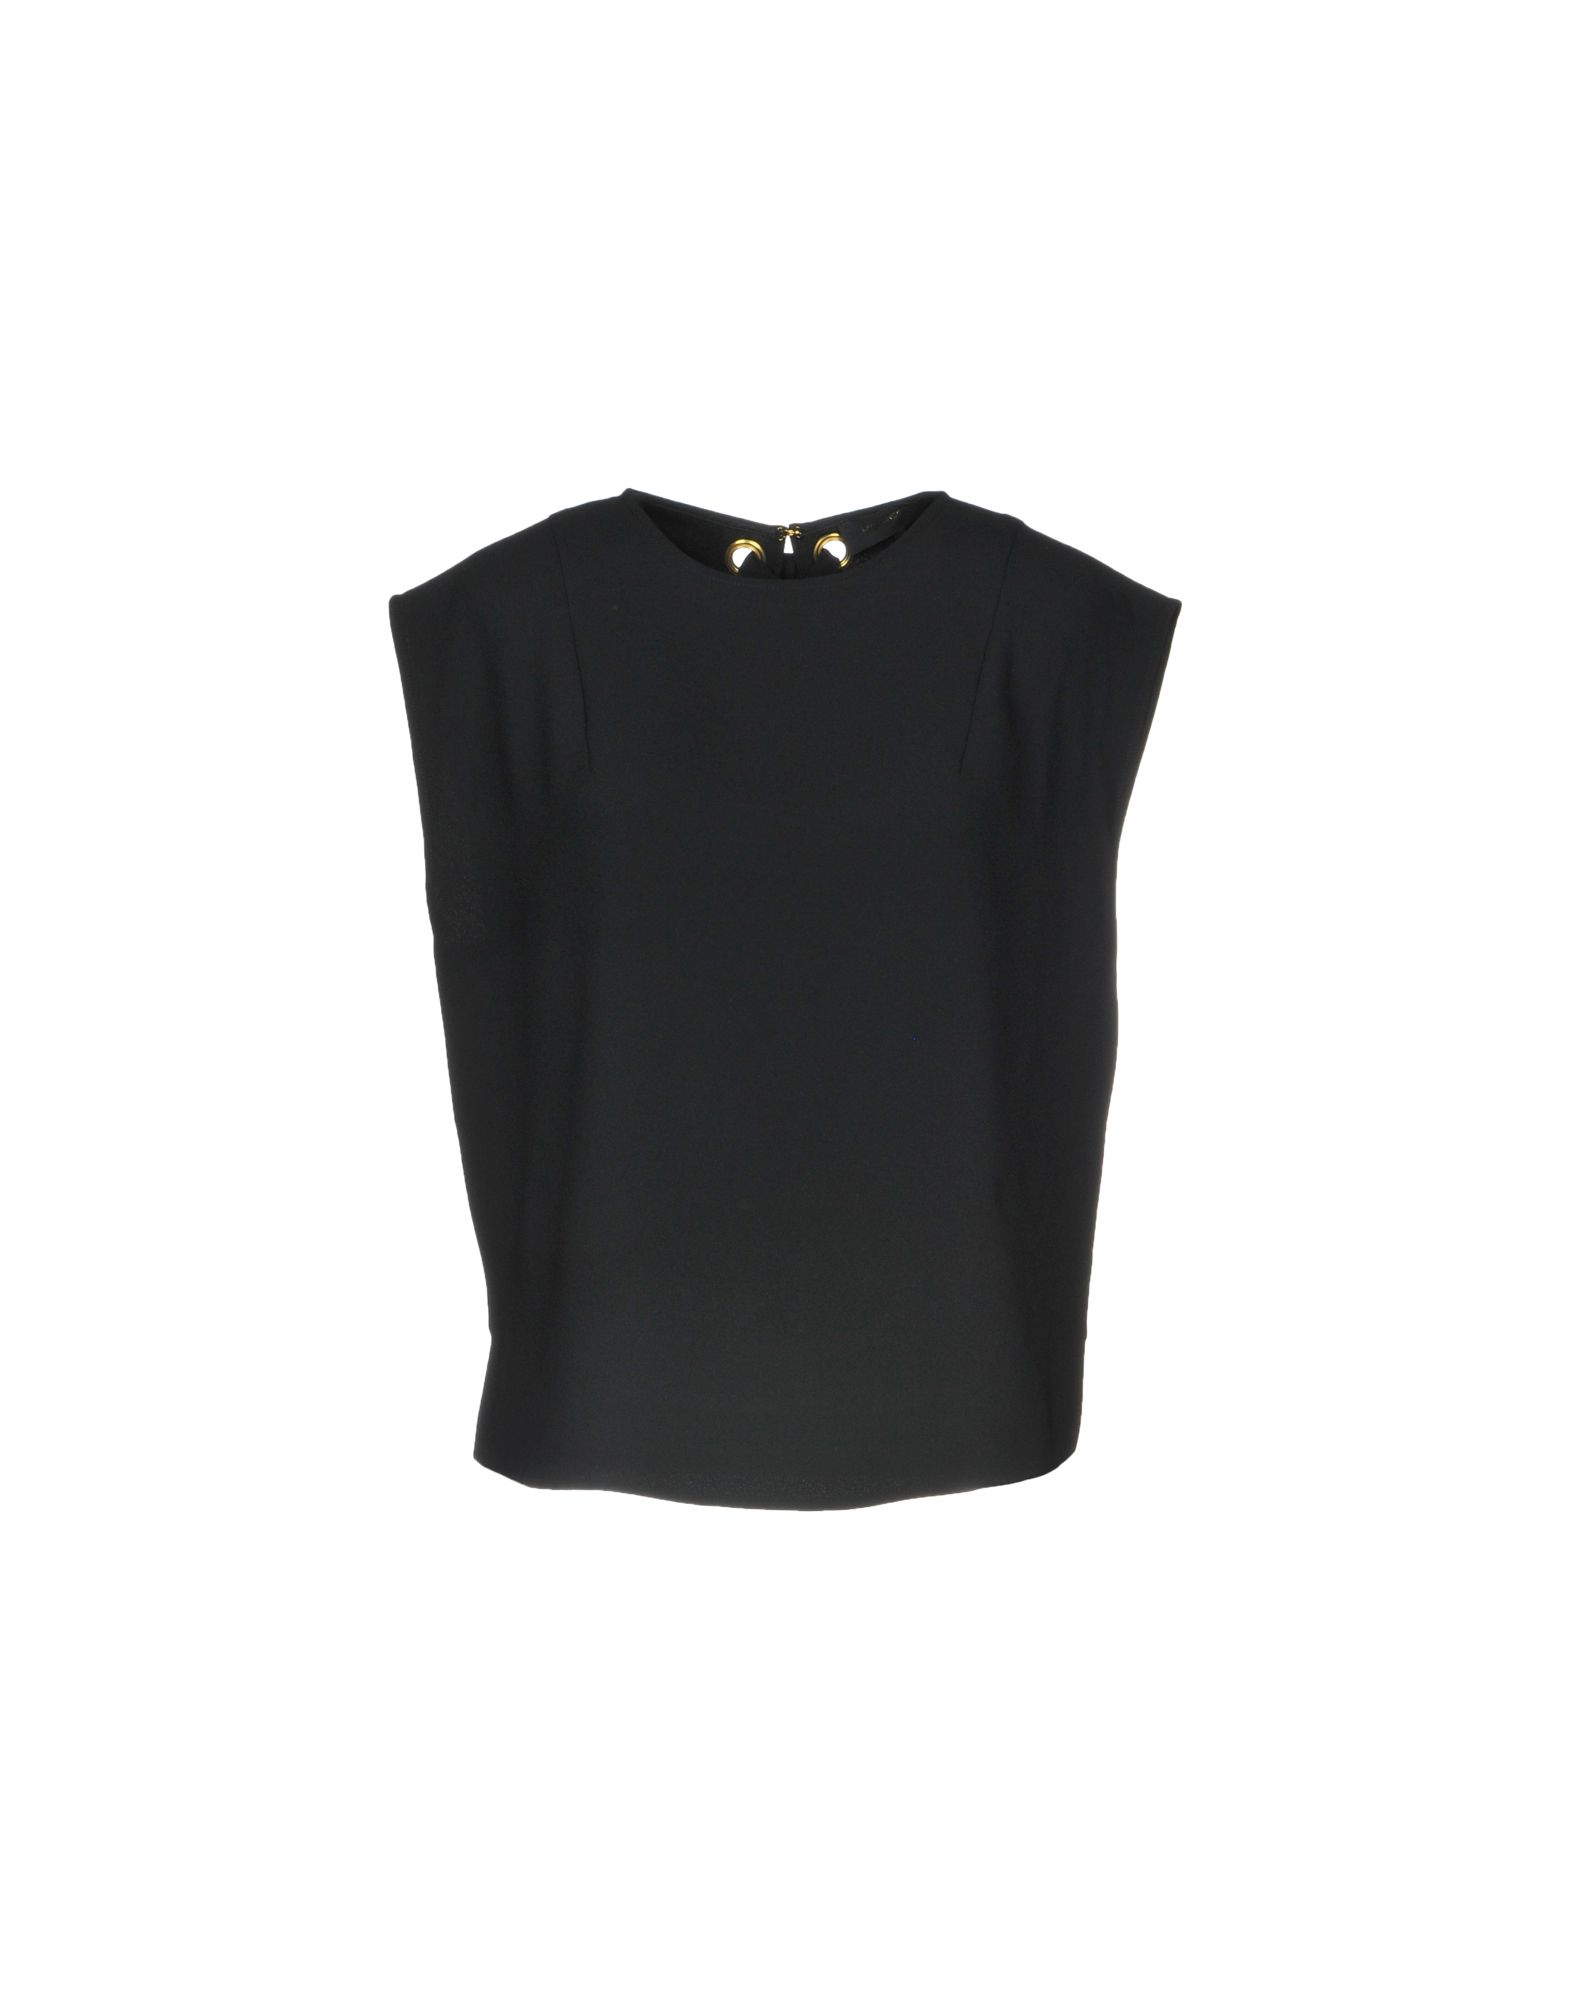 LAURENCE BRAS Top in Black